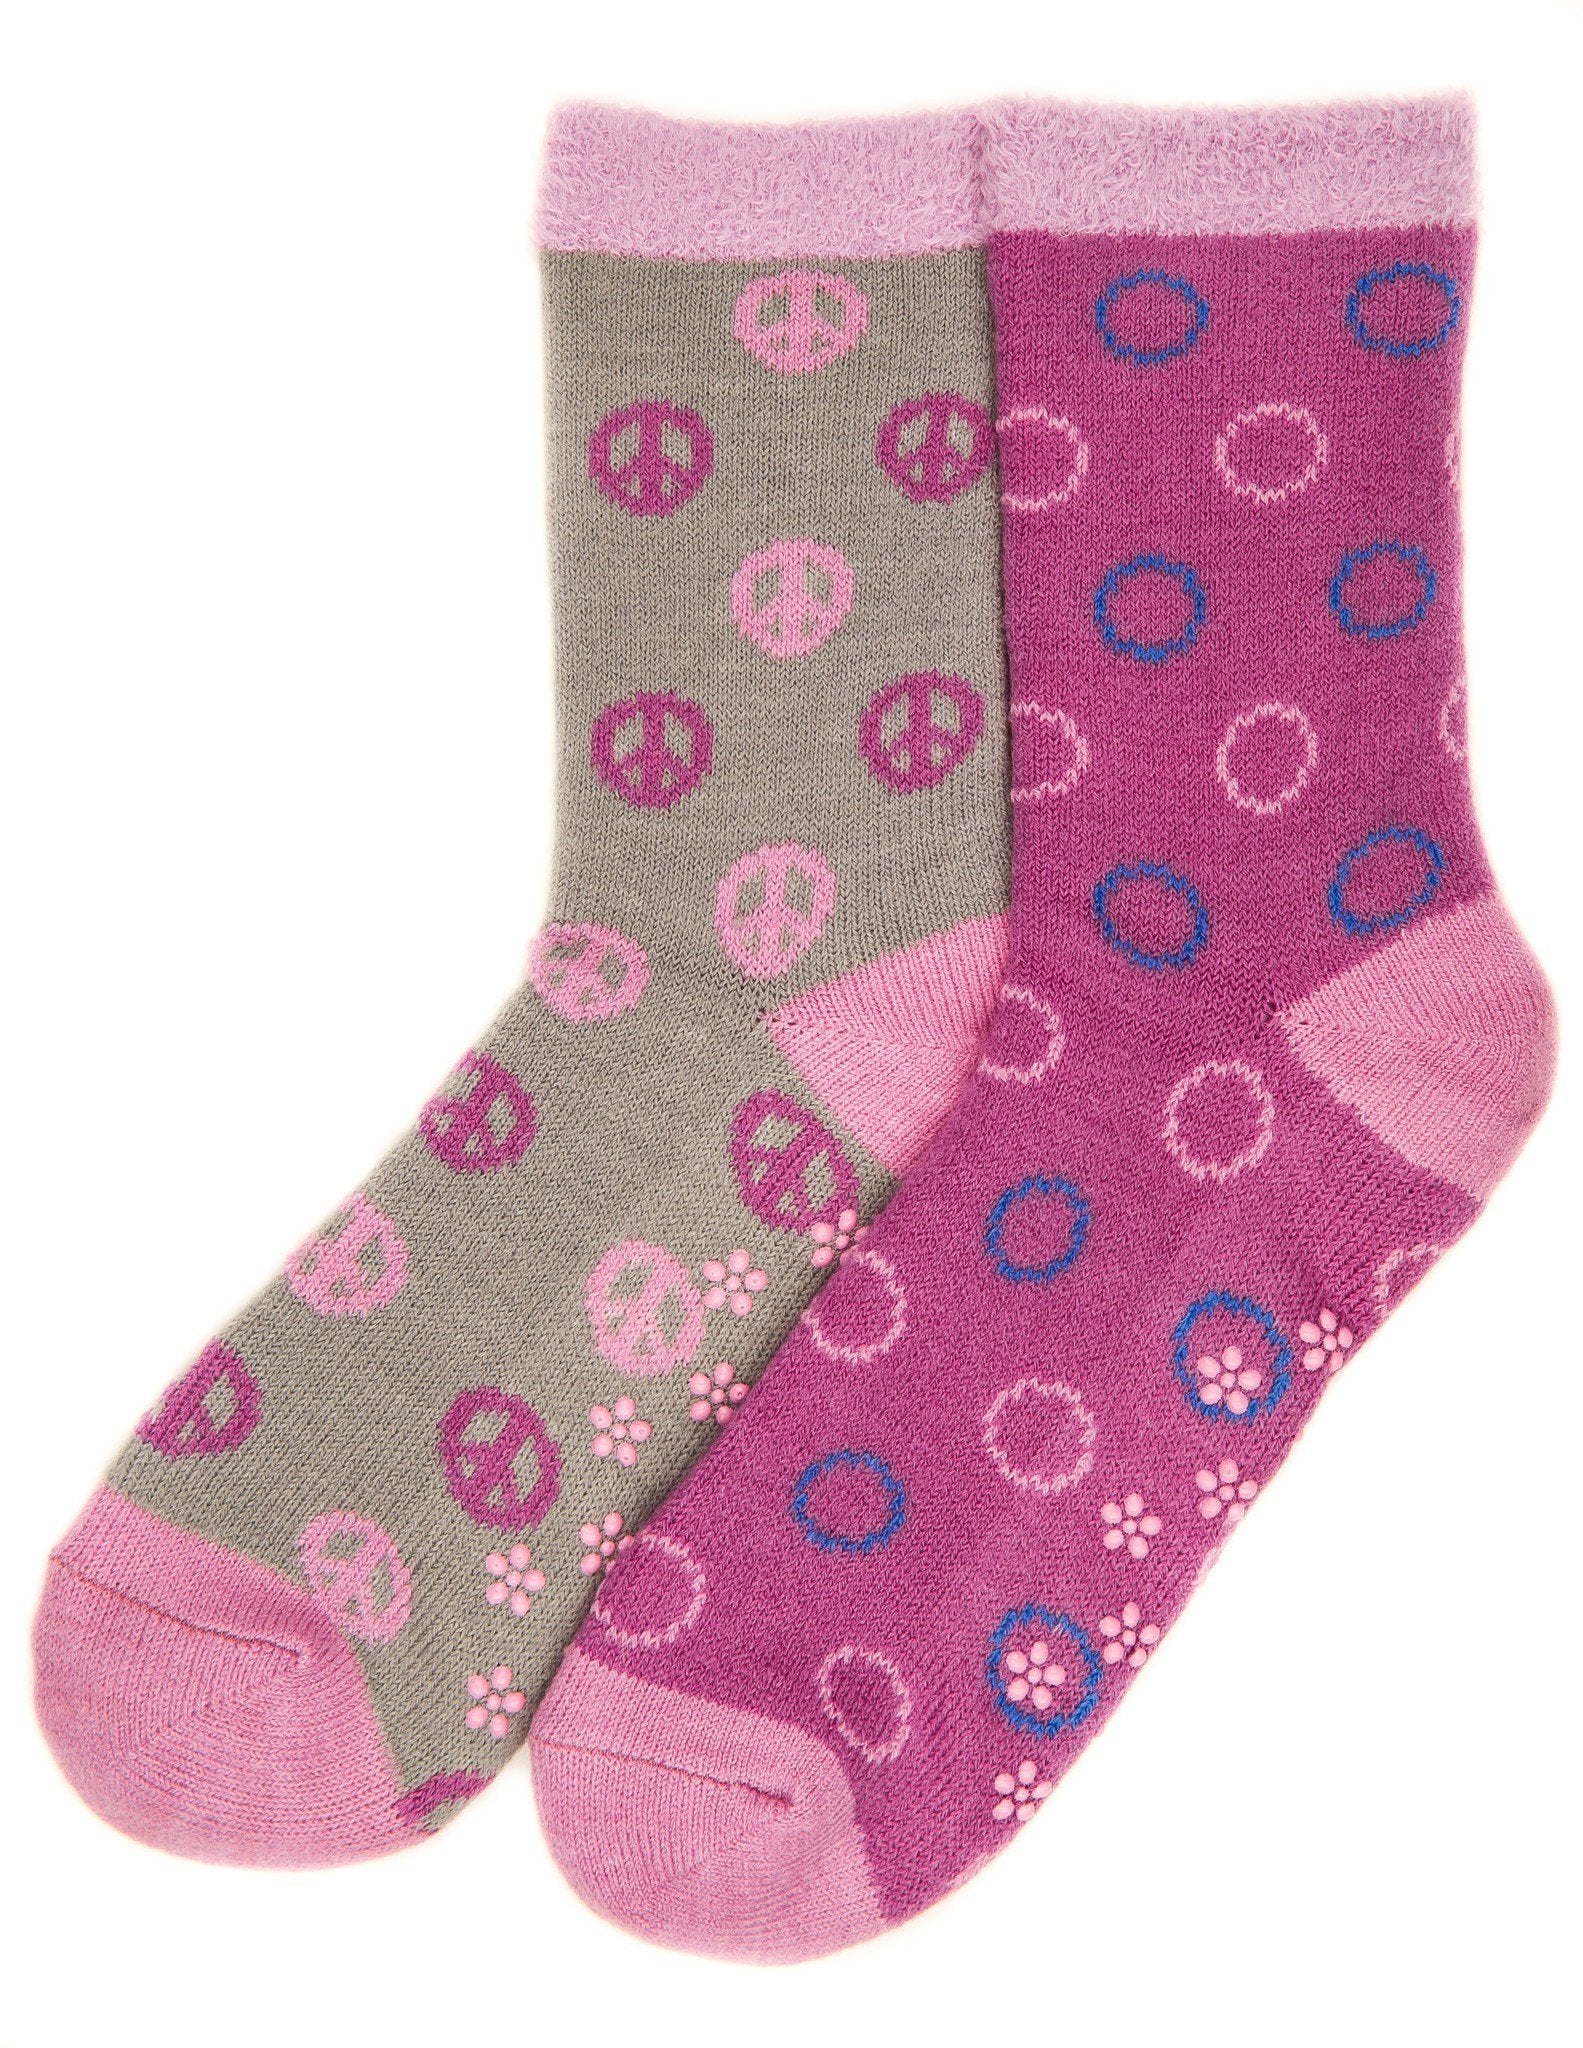 Women's Soft Premium Double Layer Winter Crew Socks - 2 Pairs - Set A4